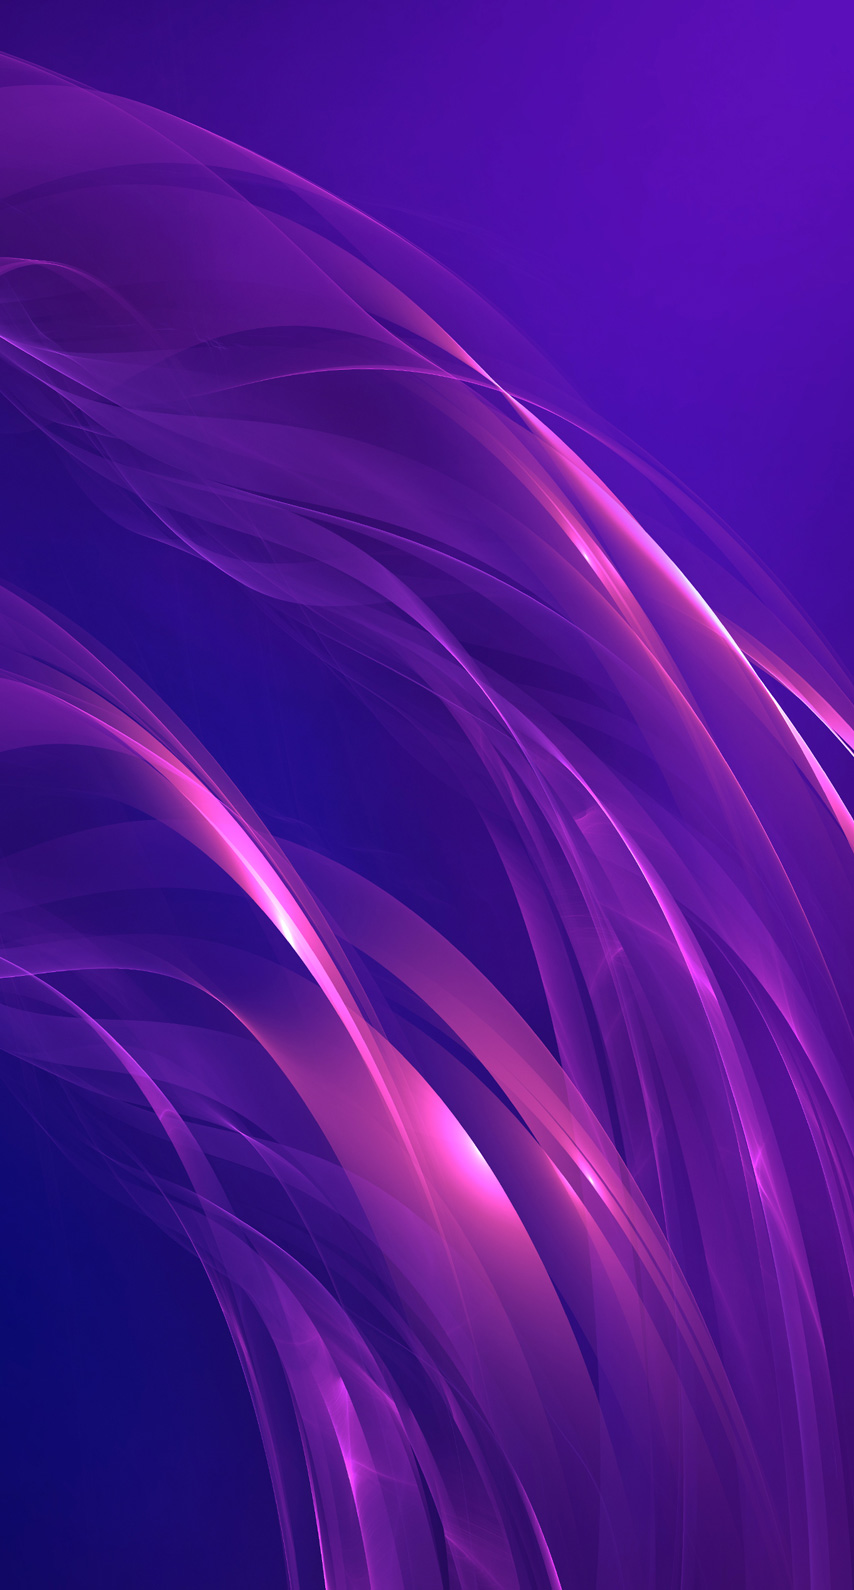 curve, creativity, smooth, flare, crinkled, lilac, computer wallpaper, graphics, special effects, fractal art